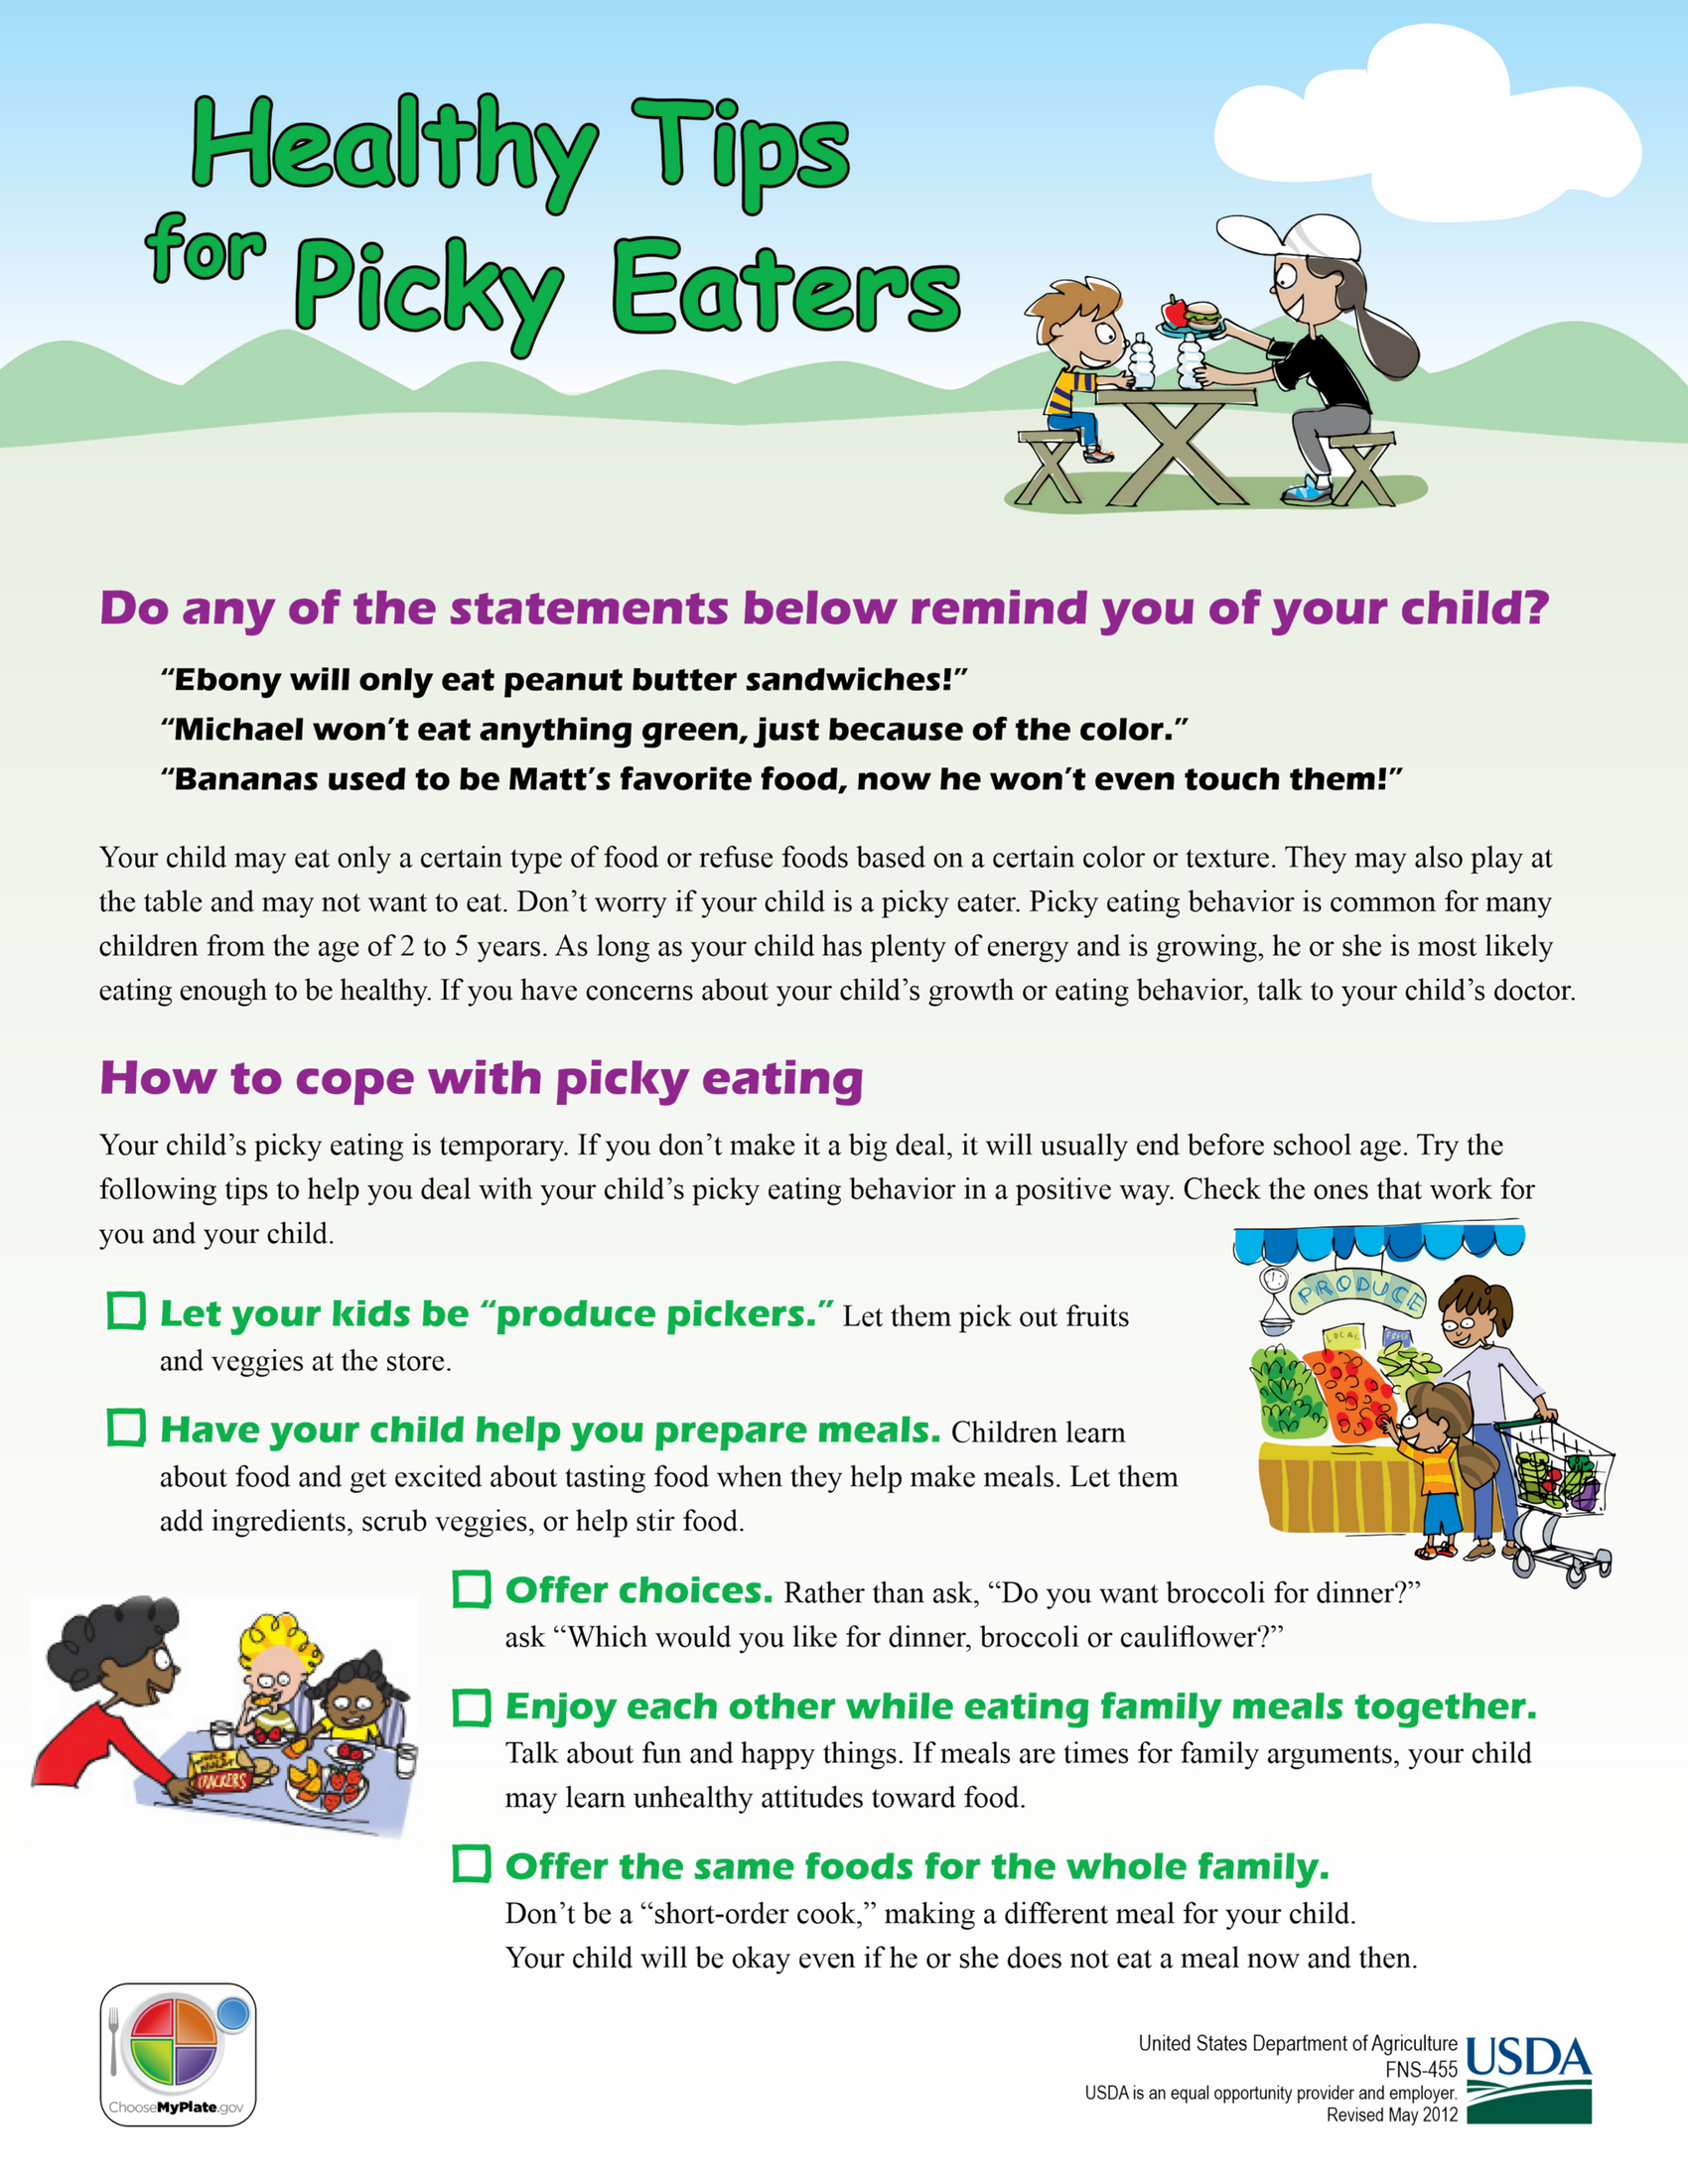 Healthy Tips for Picky Eaters